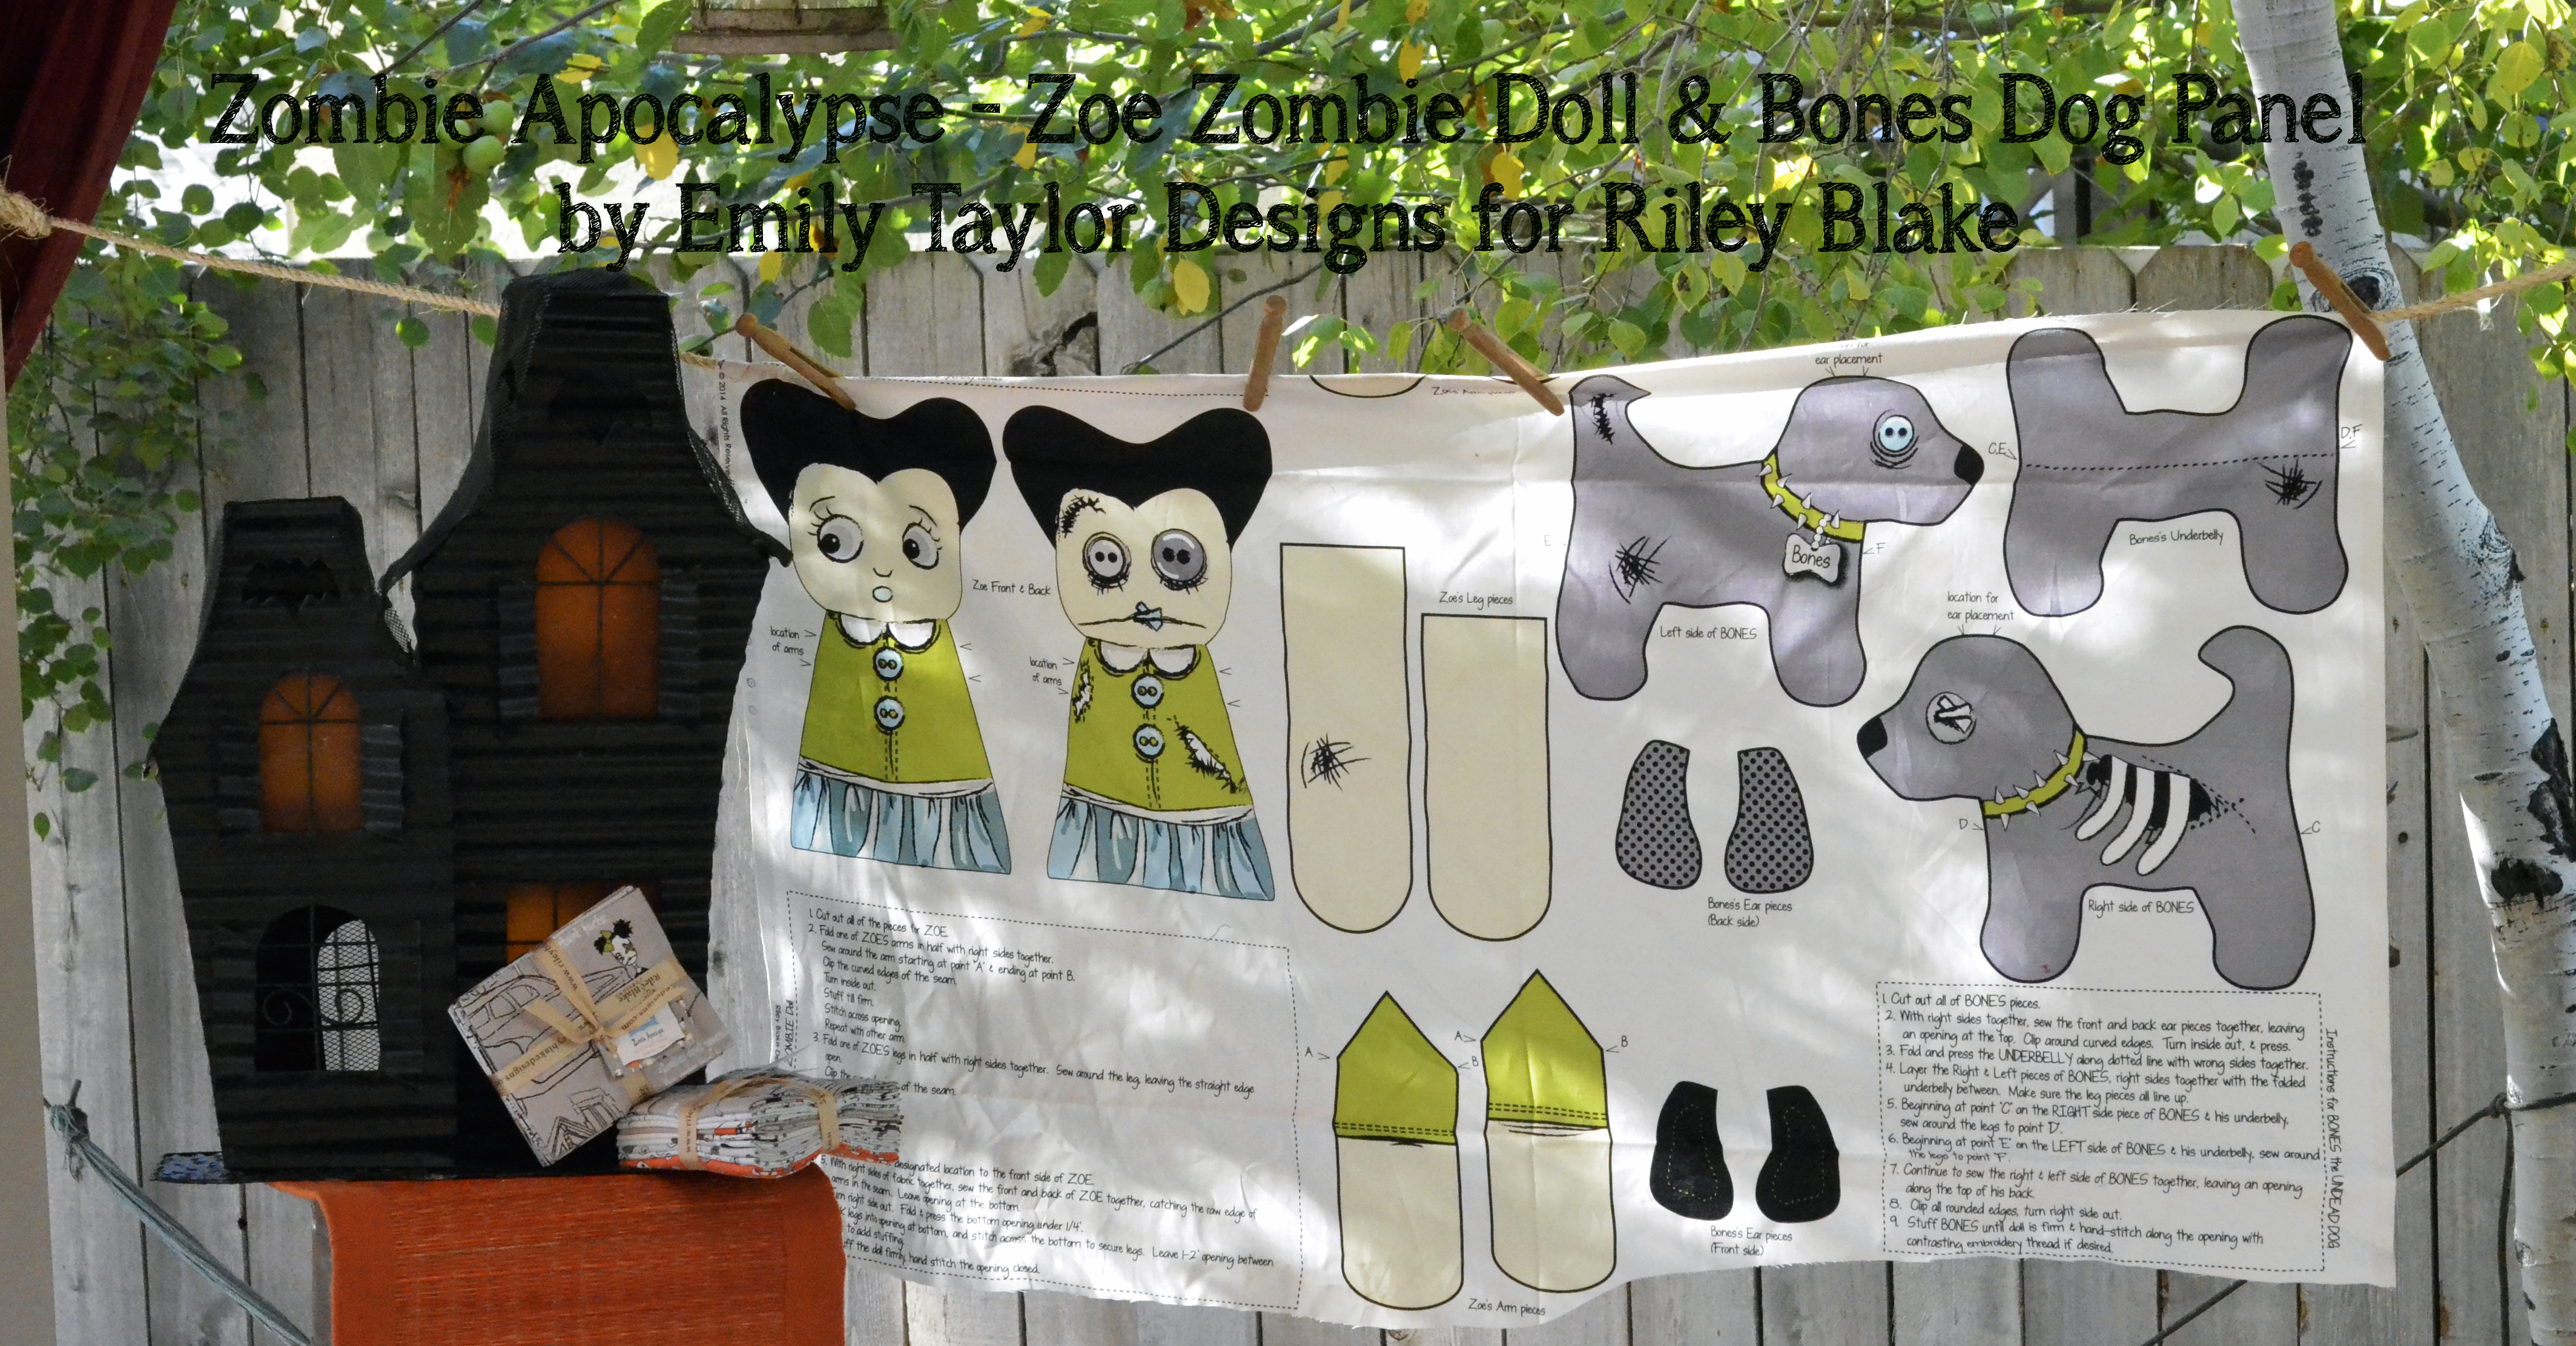 Zombie Apolcalypse Zoe Zombie Doll Bones Dog Panel